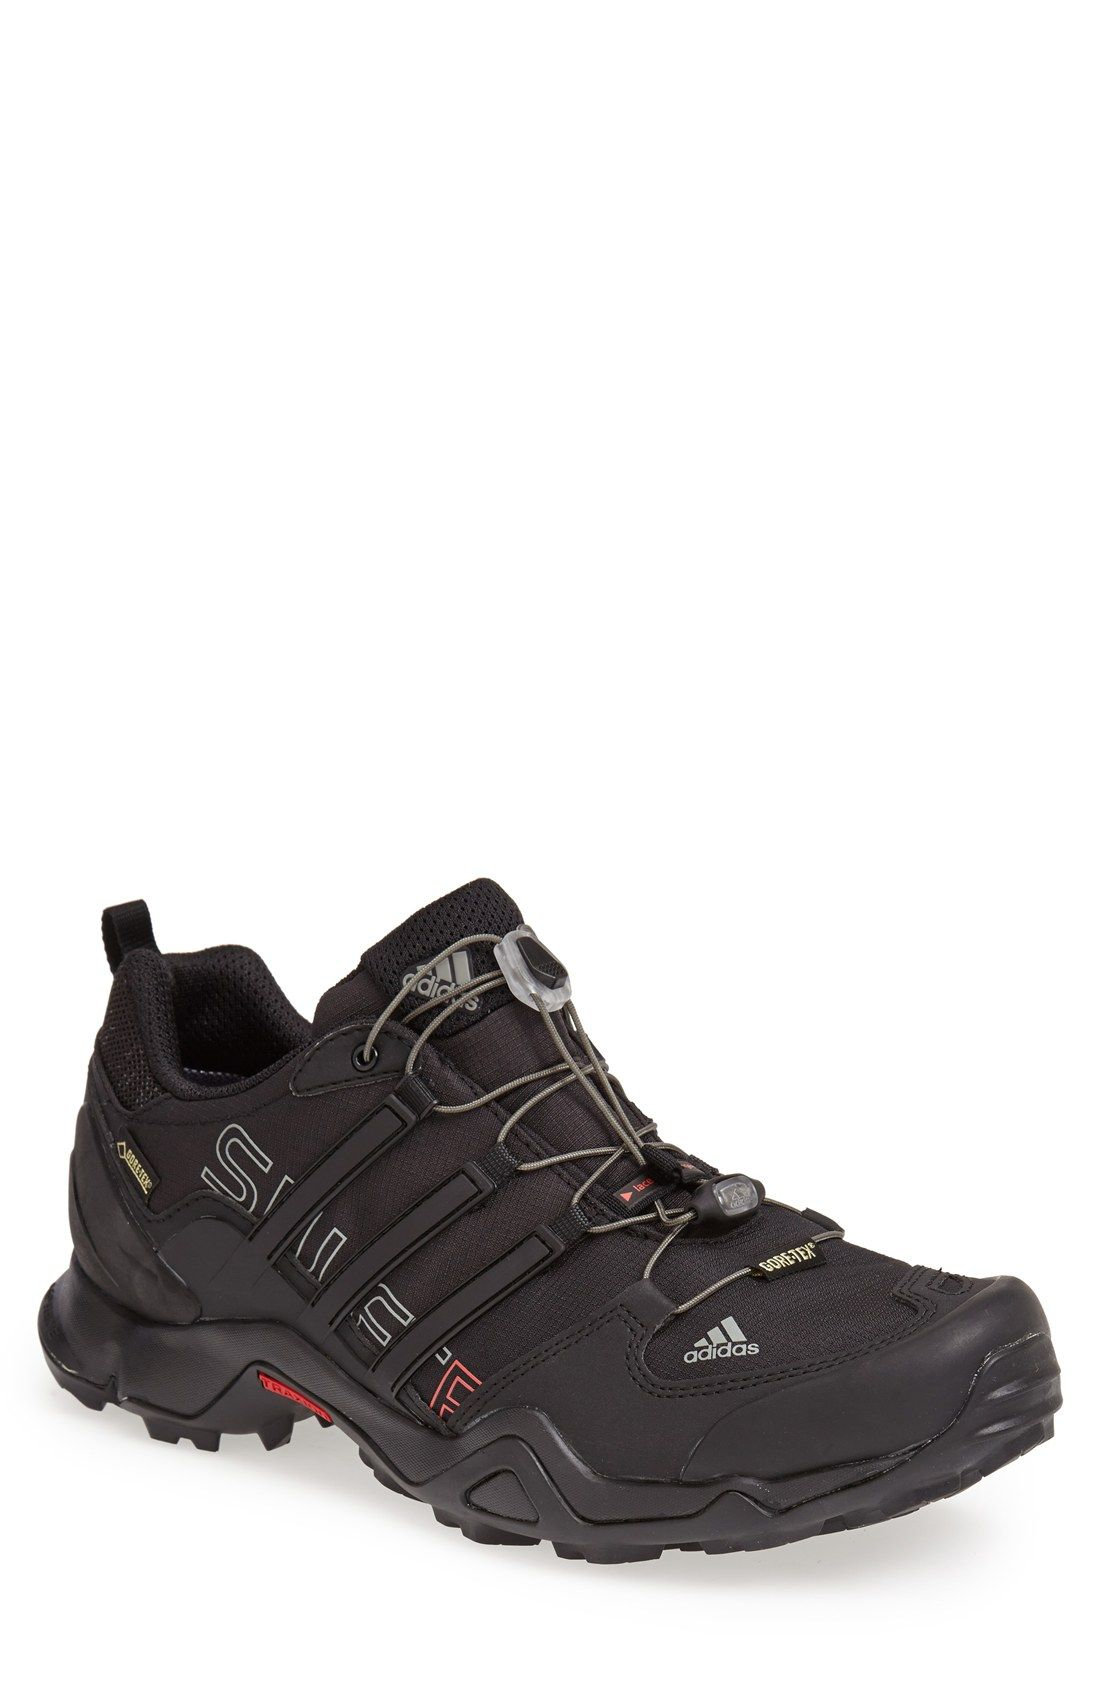 6329e8e18a8 adidas  Terrex Swift R GTX  Gore-Tex® Hiking Shoe (Men)